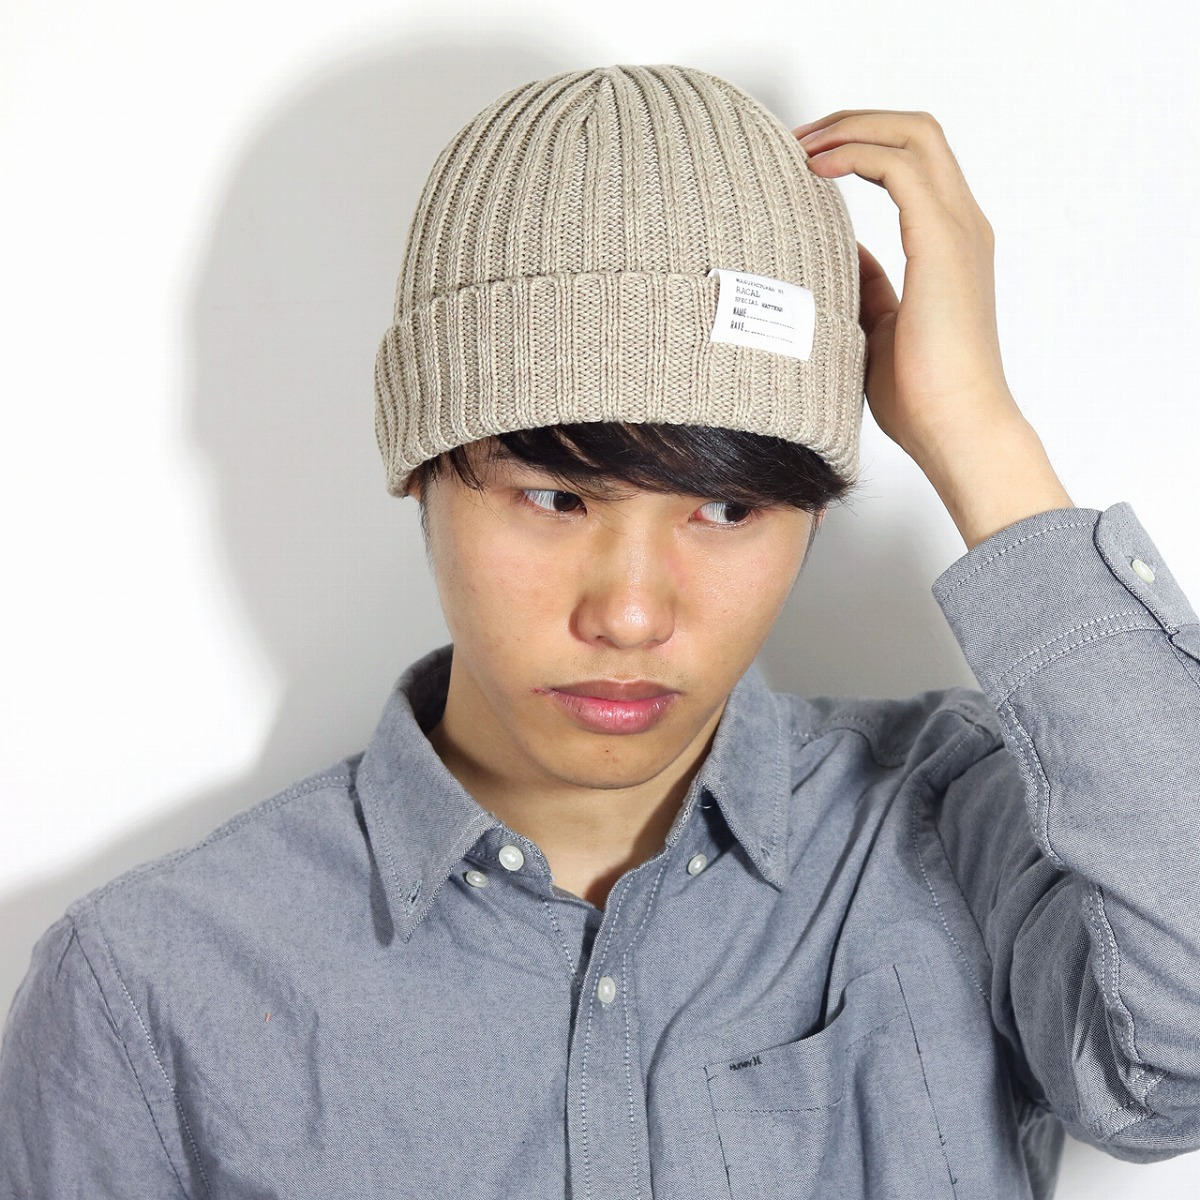 ec6df23bf95 It is a present hat man gift in product made in rib knit hat Lady s knit cap  Japan racal ニットワッチフリーサイズユニセックスサマーニット hat   beige ...